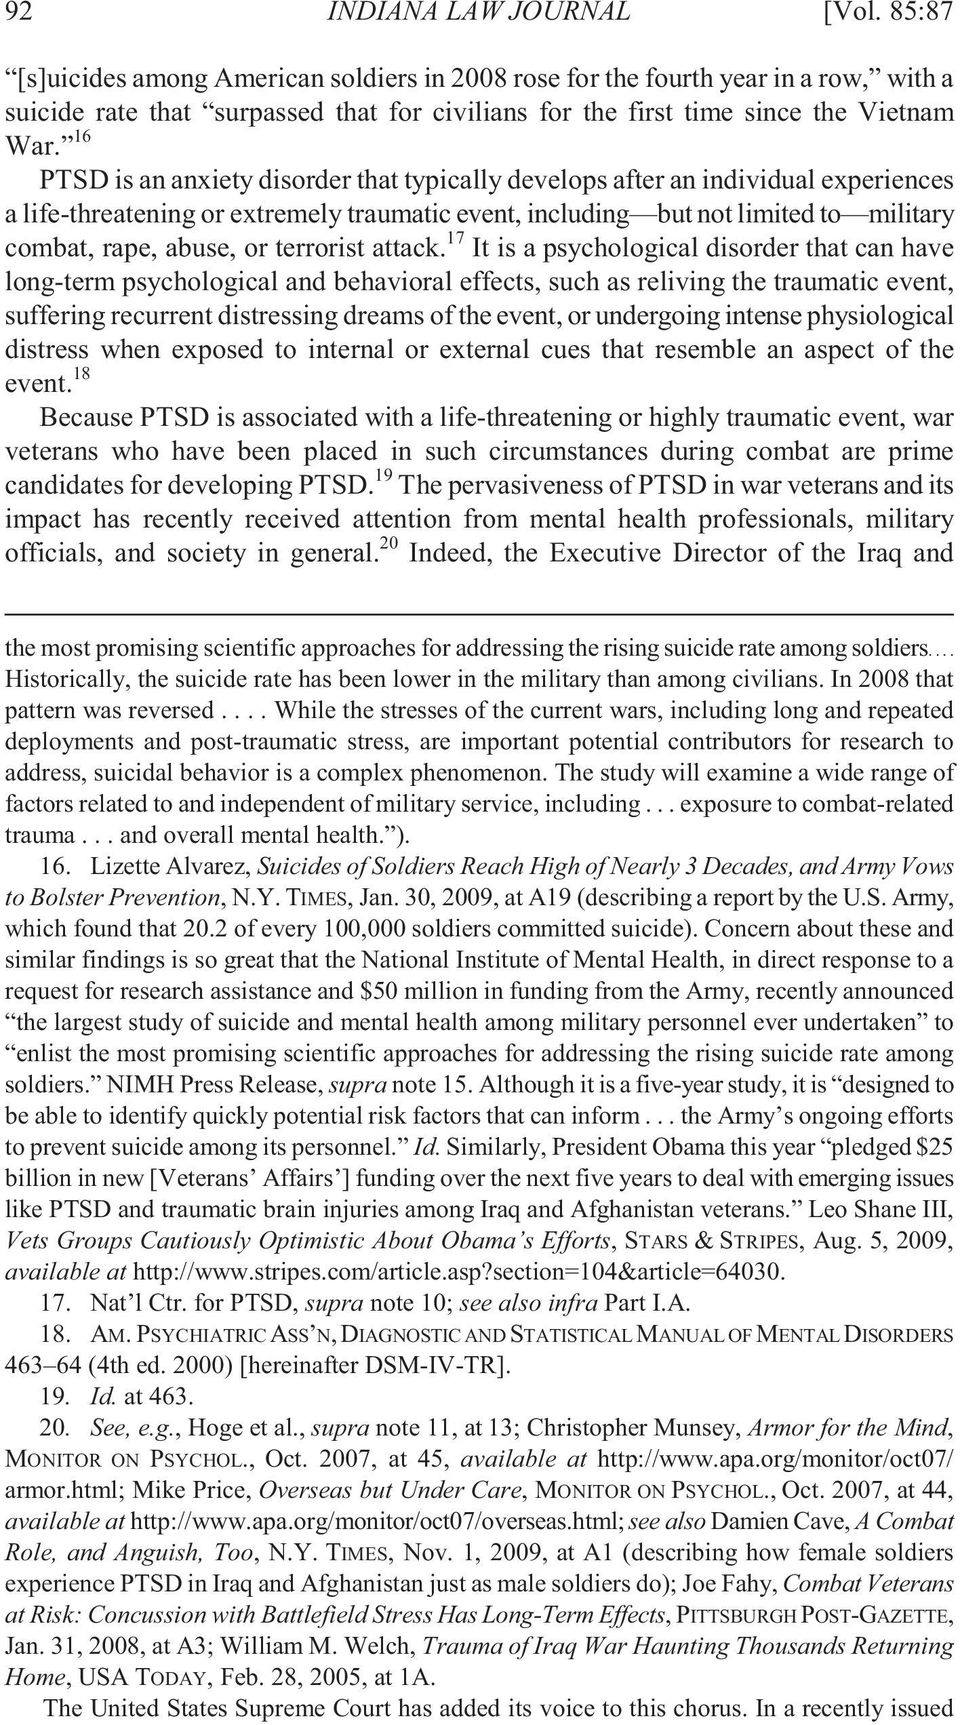 16 PTSD is an anxiety disorder that typically develops after an individual experiences a life-threatening or extremely traumatic event, including but not limited to military combat, rape, abuse, or